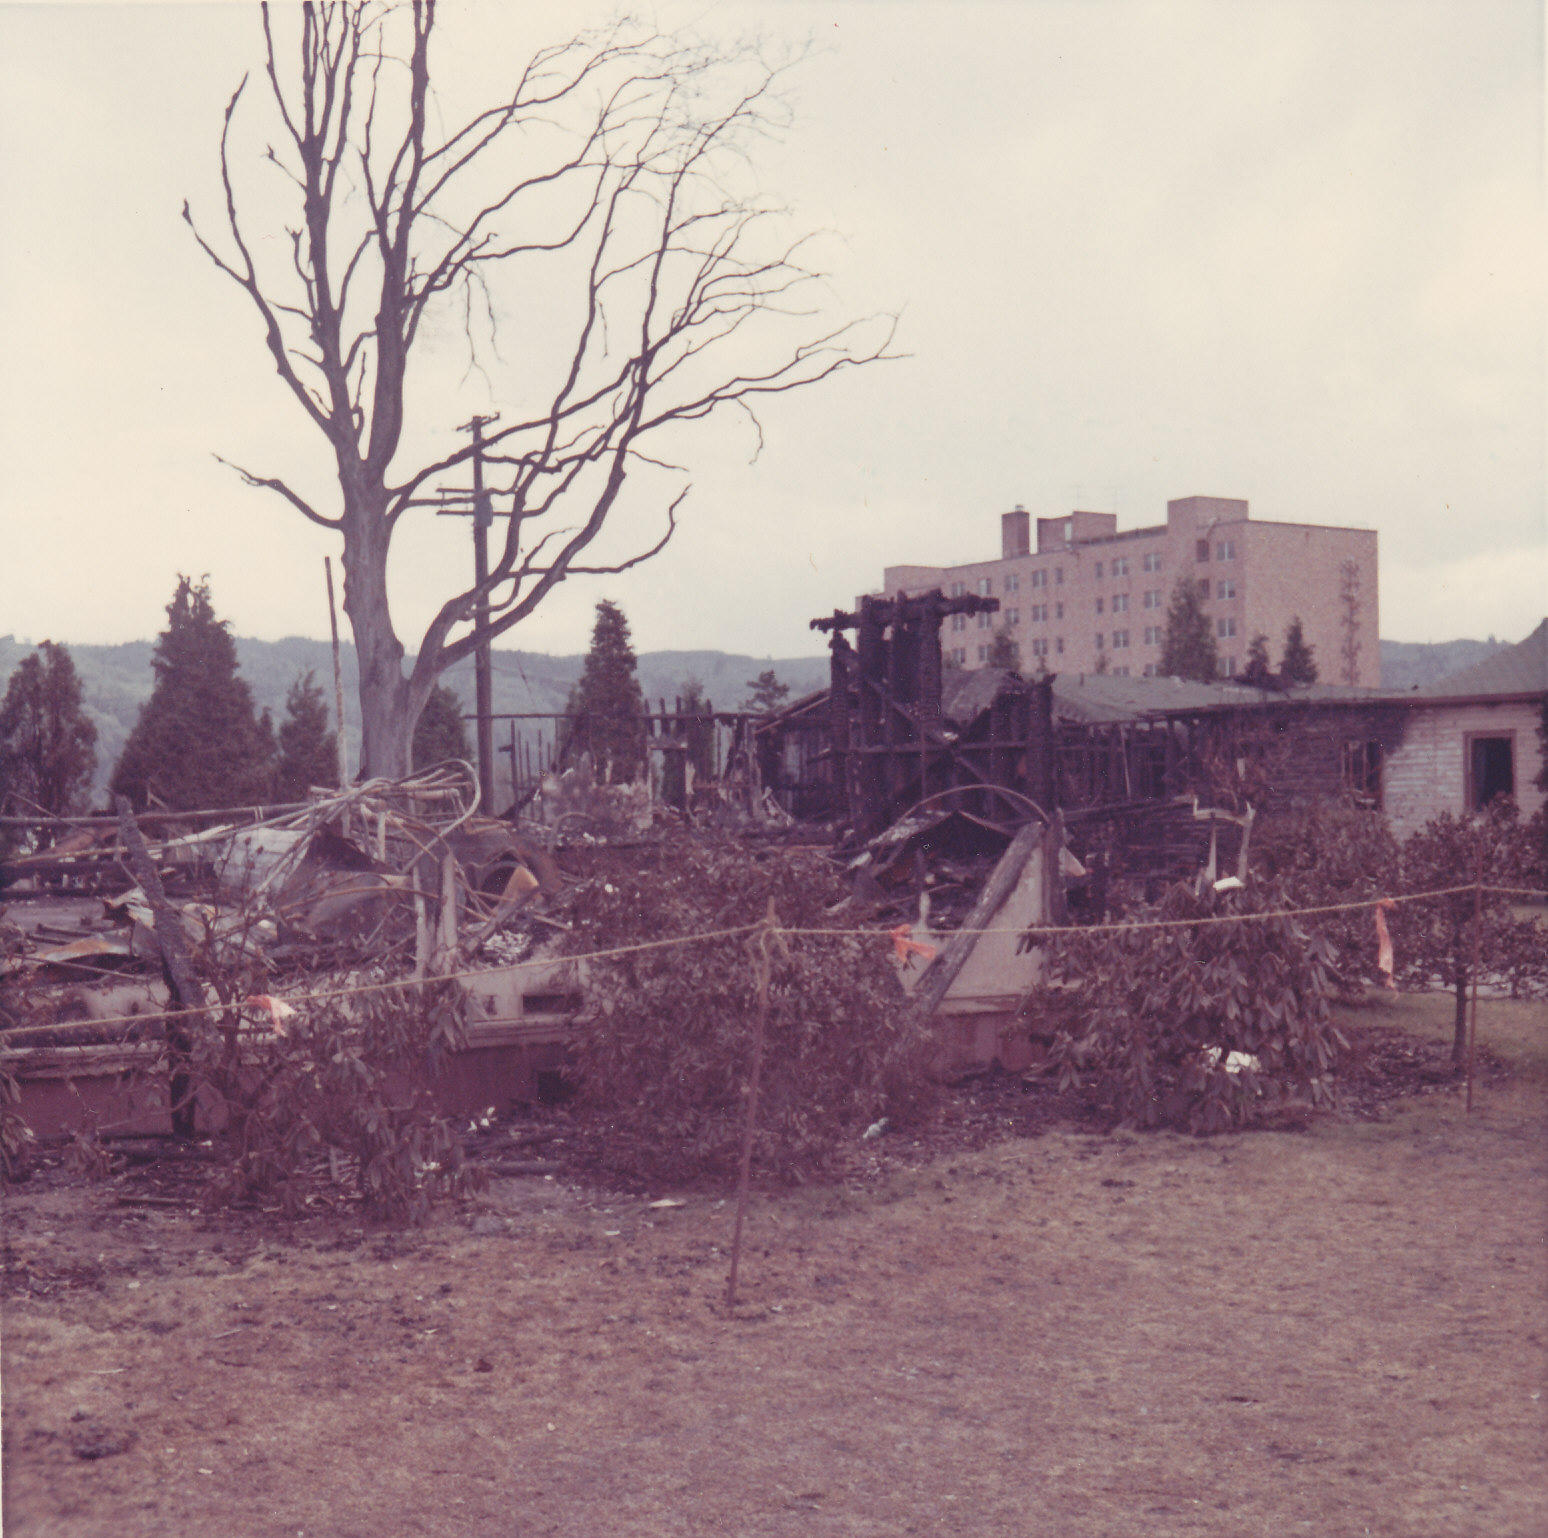 Aftermath of the fire, photo by Fr. Michael Heppen, C.S.C., April 18, 1969